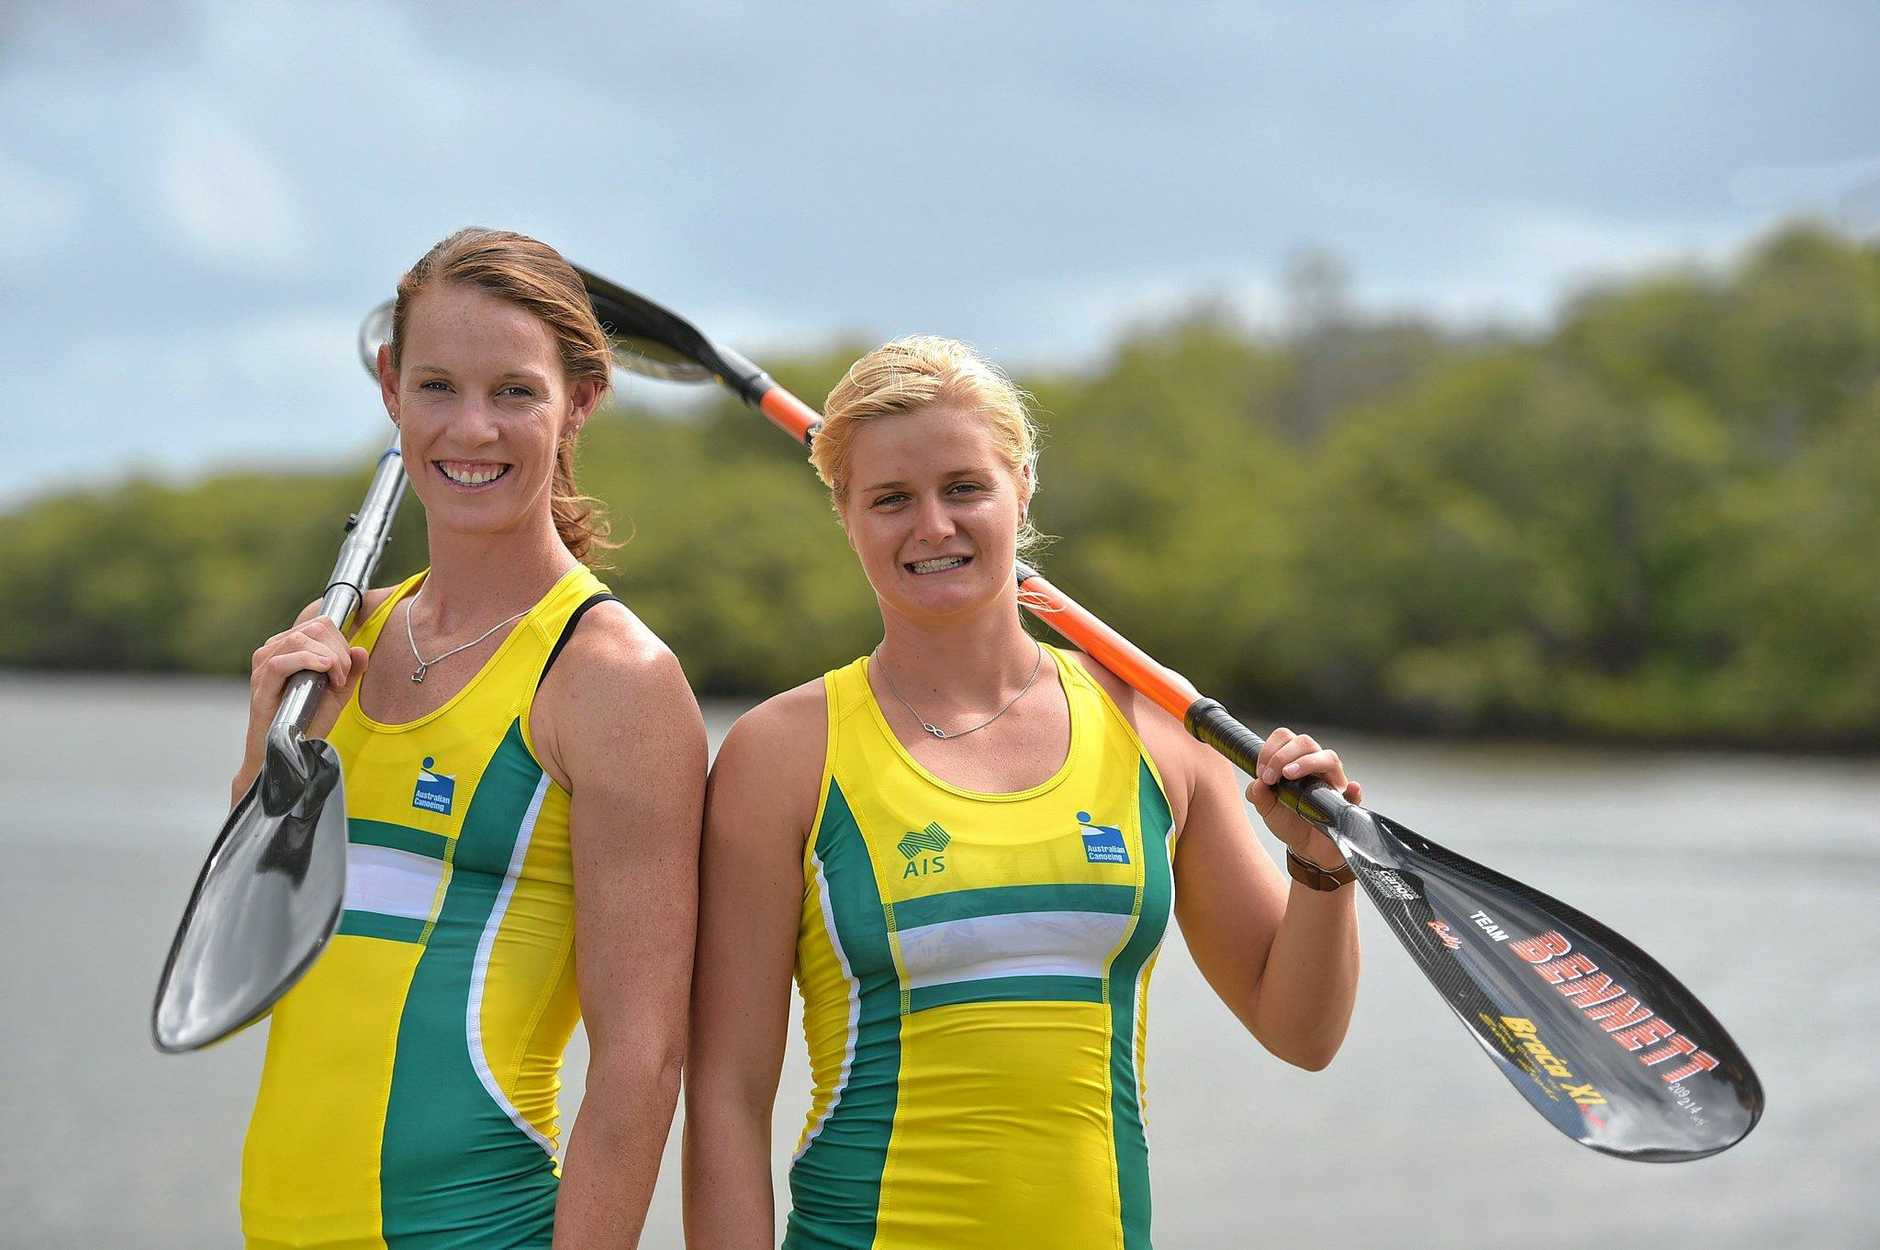 Top kayakers Alyce Burnett and Alyssa Bull chat to Weekend in the lead up to the 2016 Olympics where they'll represent Australia.